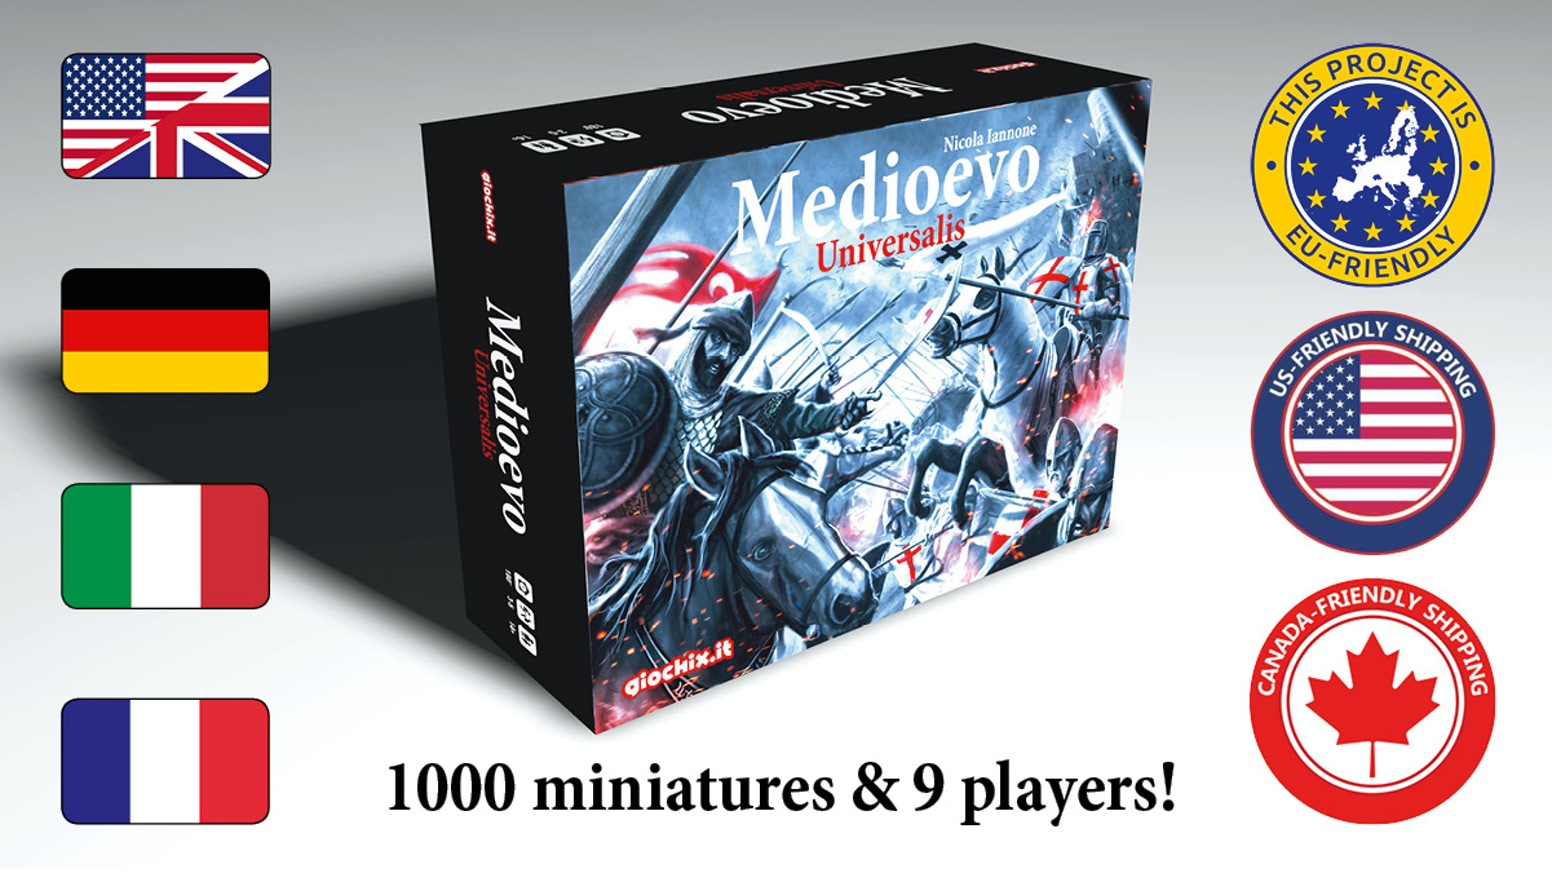 A great epic strategic game for 3-9 players with hundred army miniatures, lot of tokens and cards and a multi-level strategy